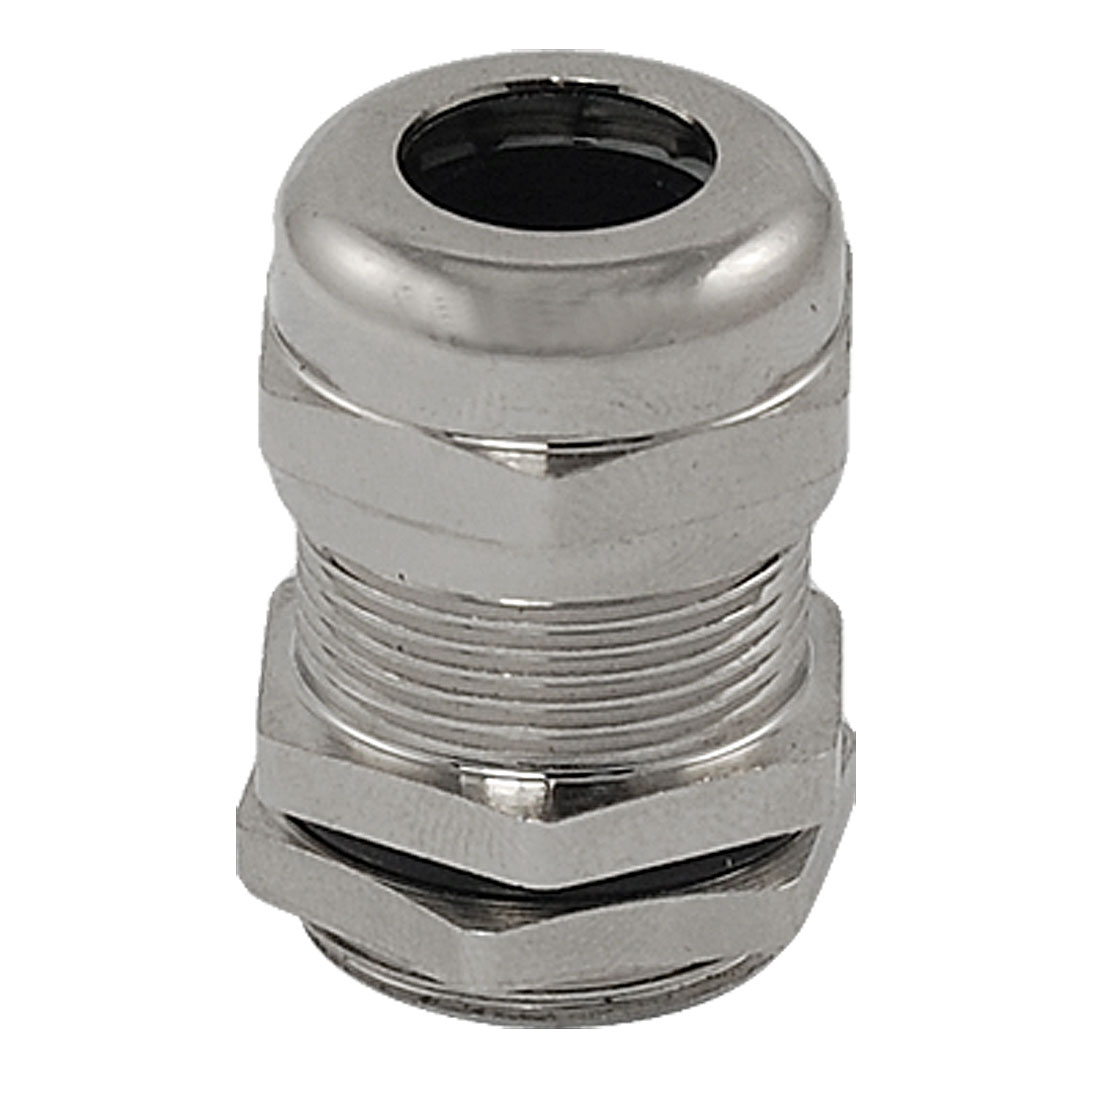 Stainless Steel PG11 Waterproof Connector Glands for 5.5-8.5mm Cables